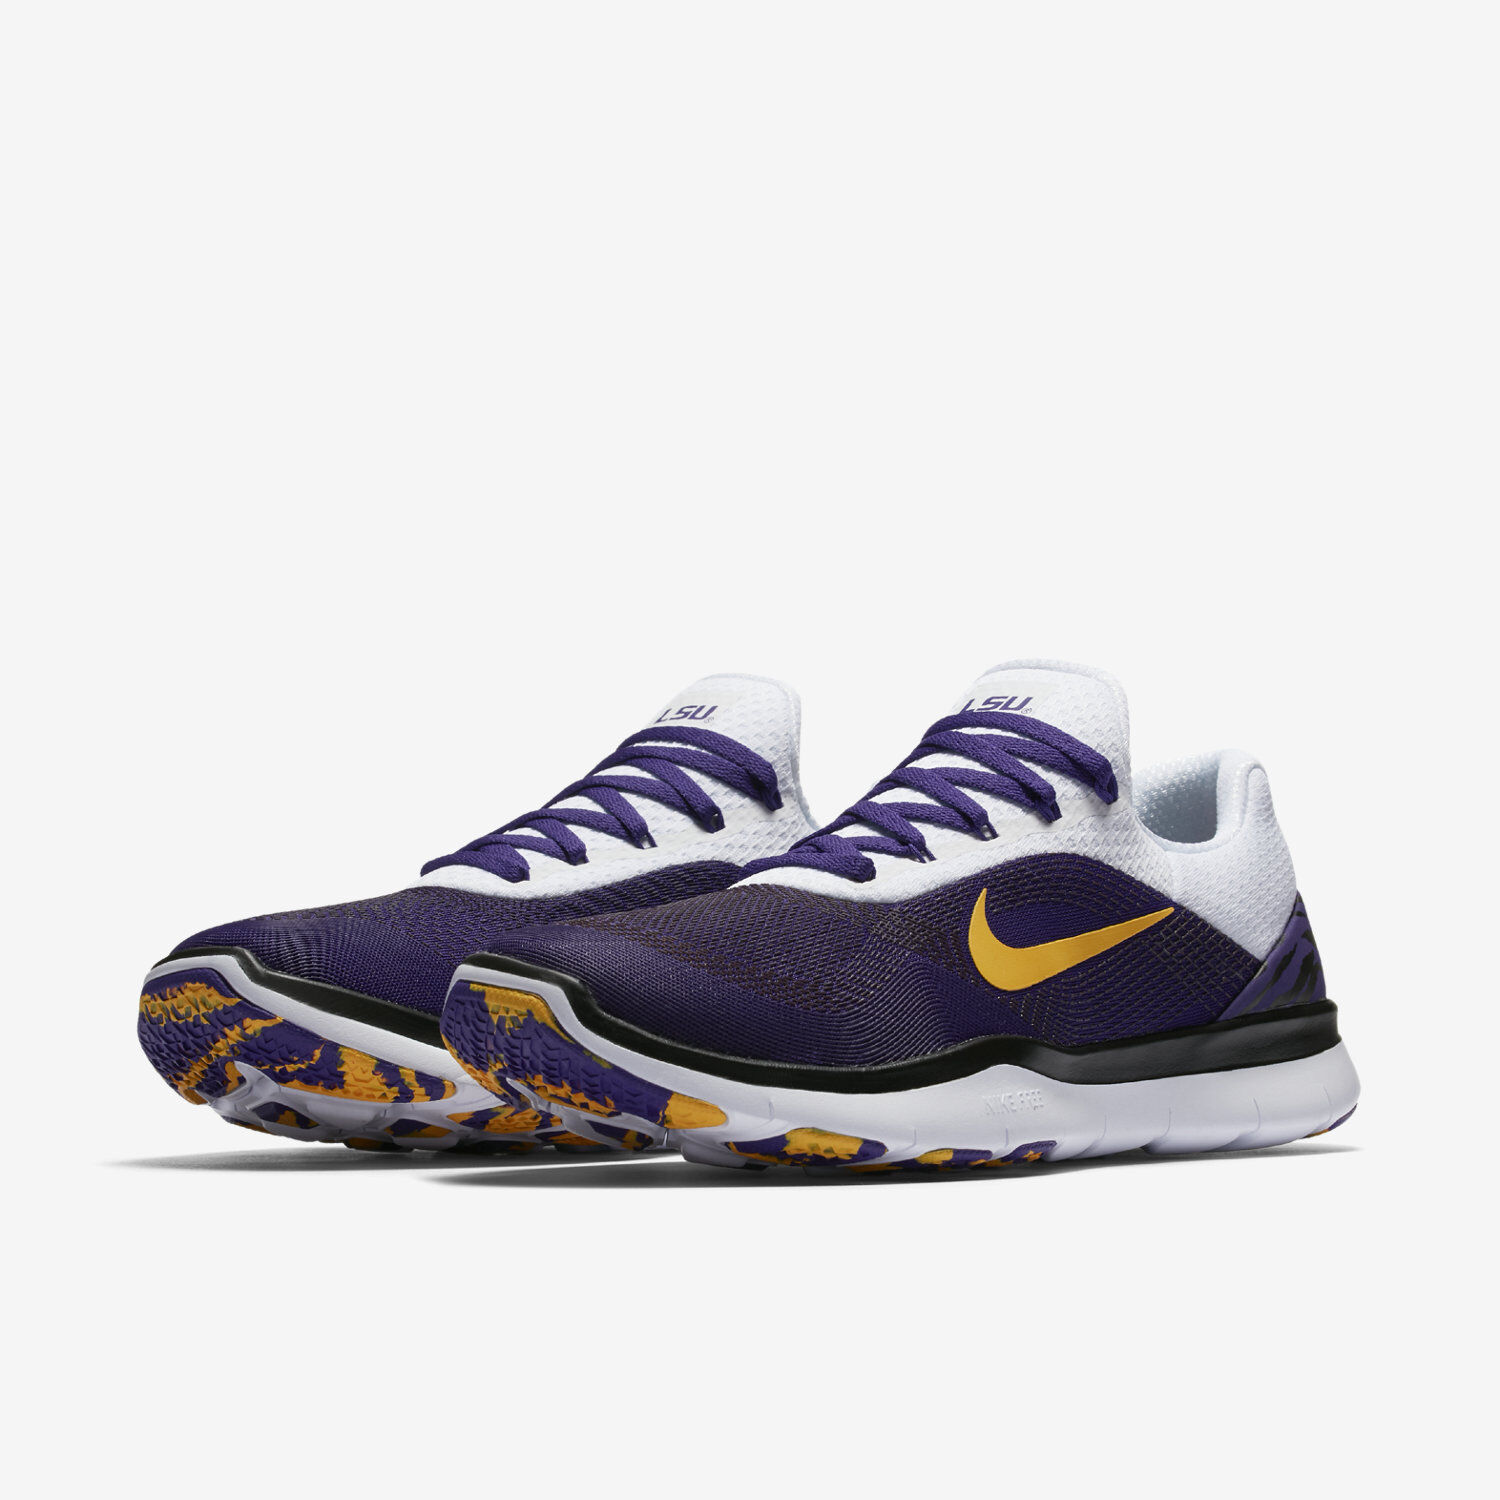 abcb6d1212d3d Nike Nike Nike Free Trainer Week Zero LSU Tigers Sizes 12 14 Shoes  AA0881-500 Louisiana f3463c